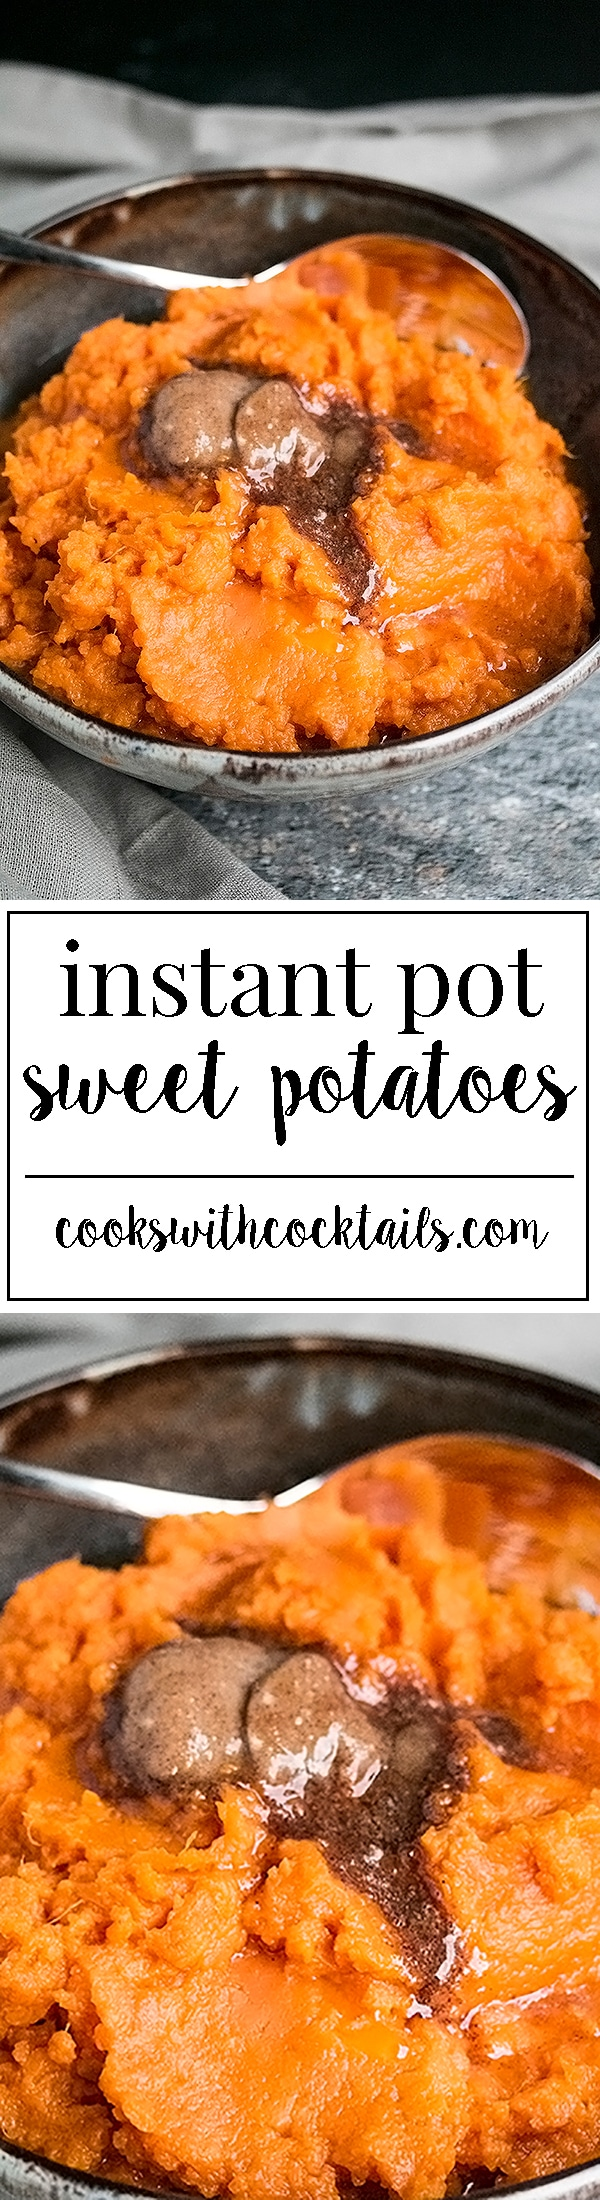 Instant pot sweet potatoes are a incredibly easy, healthy, colorful and delicious addition to any holiday meal or any meal for that matter. #instantpotrecipes #sweetpotatoes